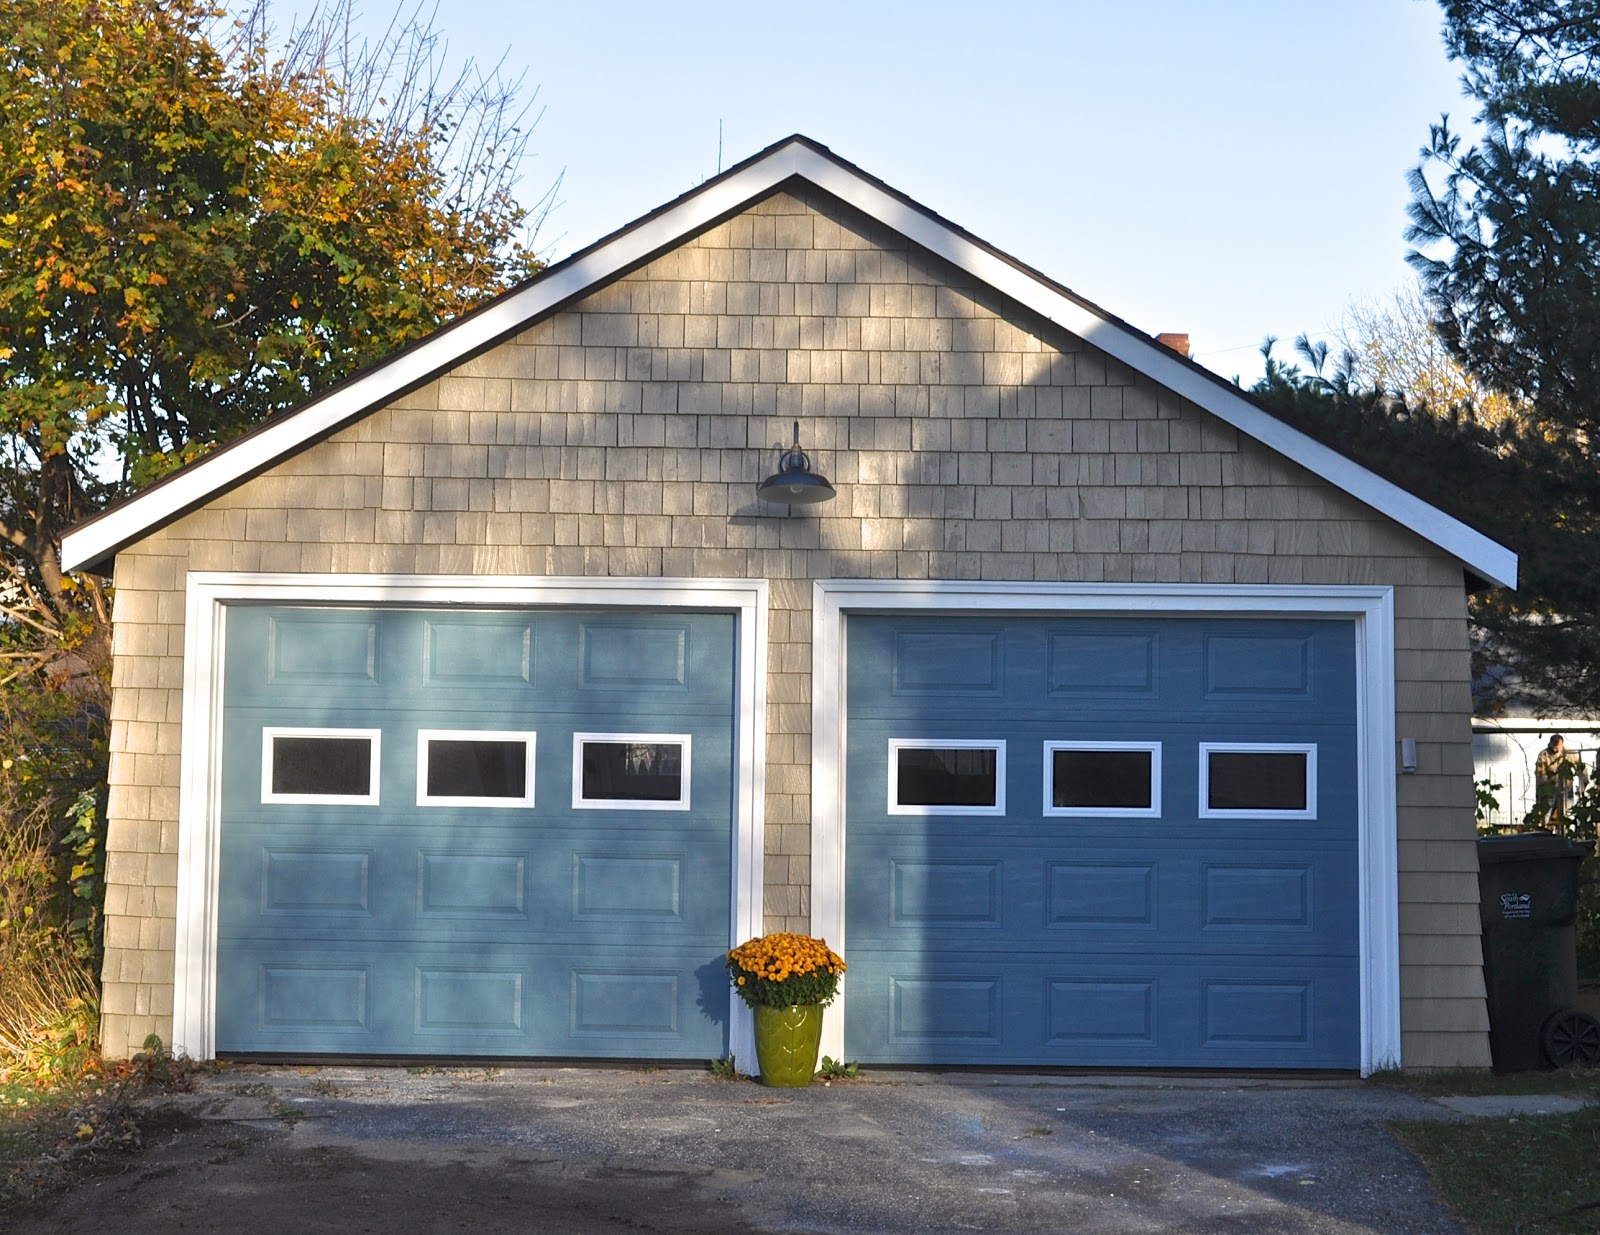 Sopo cottage open house dec 2 11 3 pm 4 car garage kit